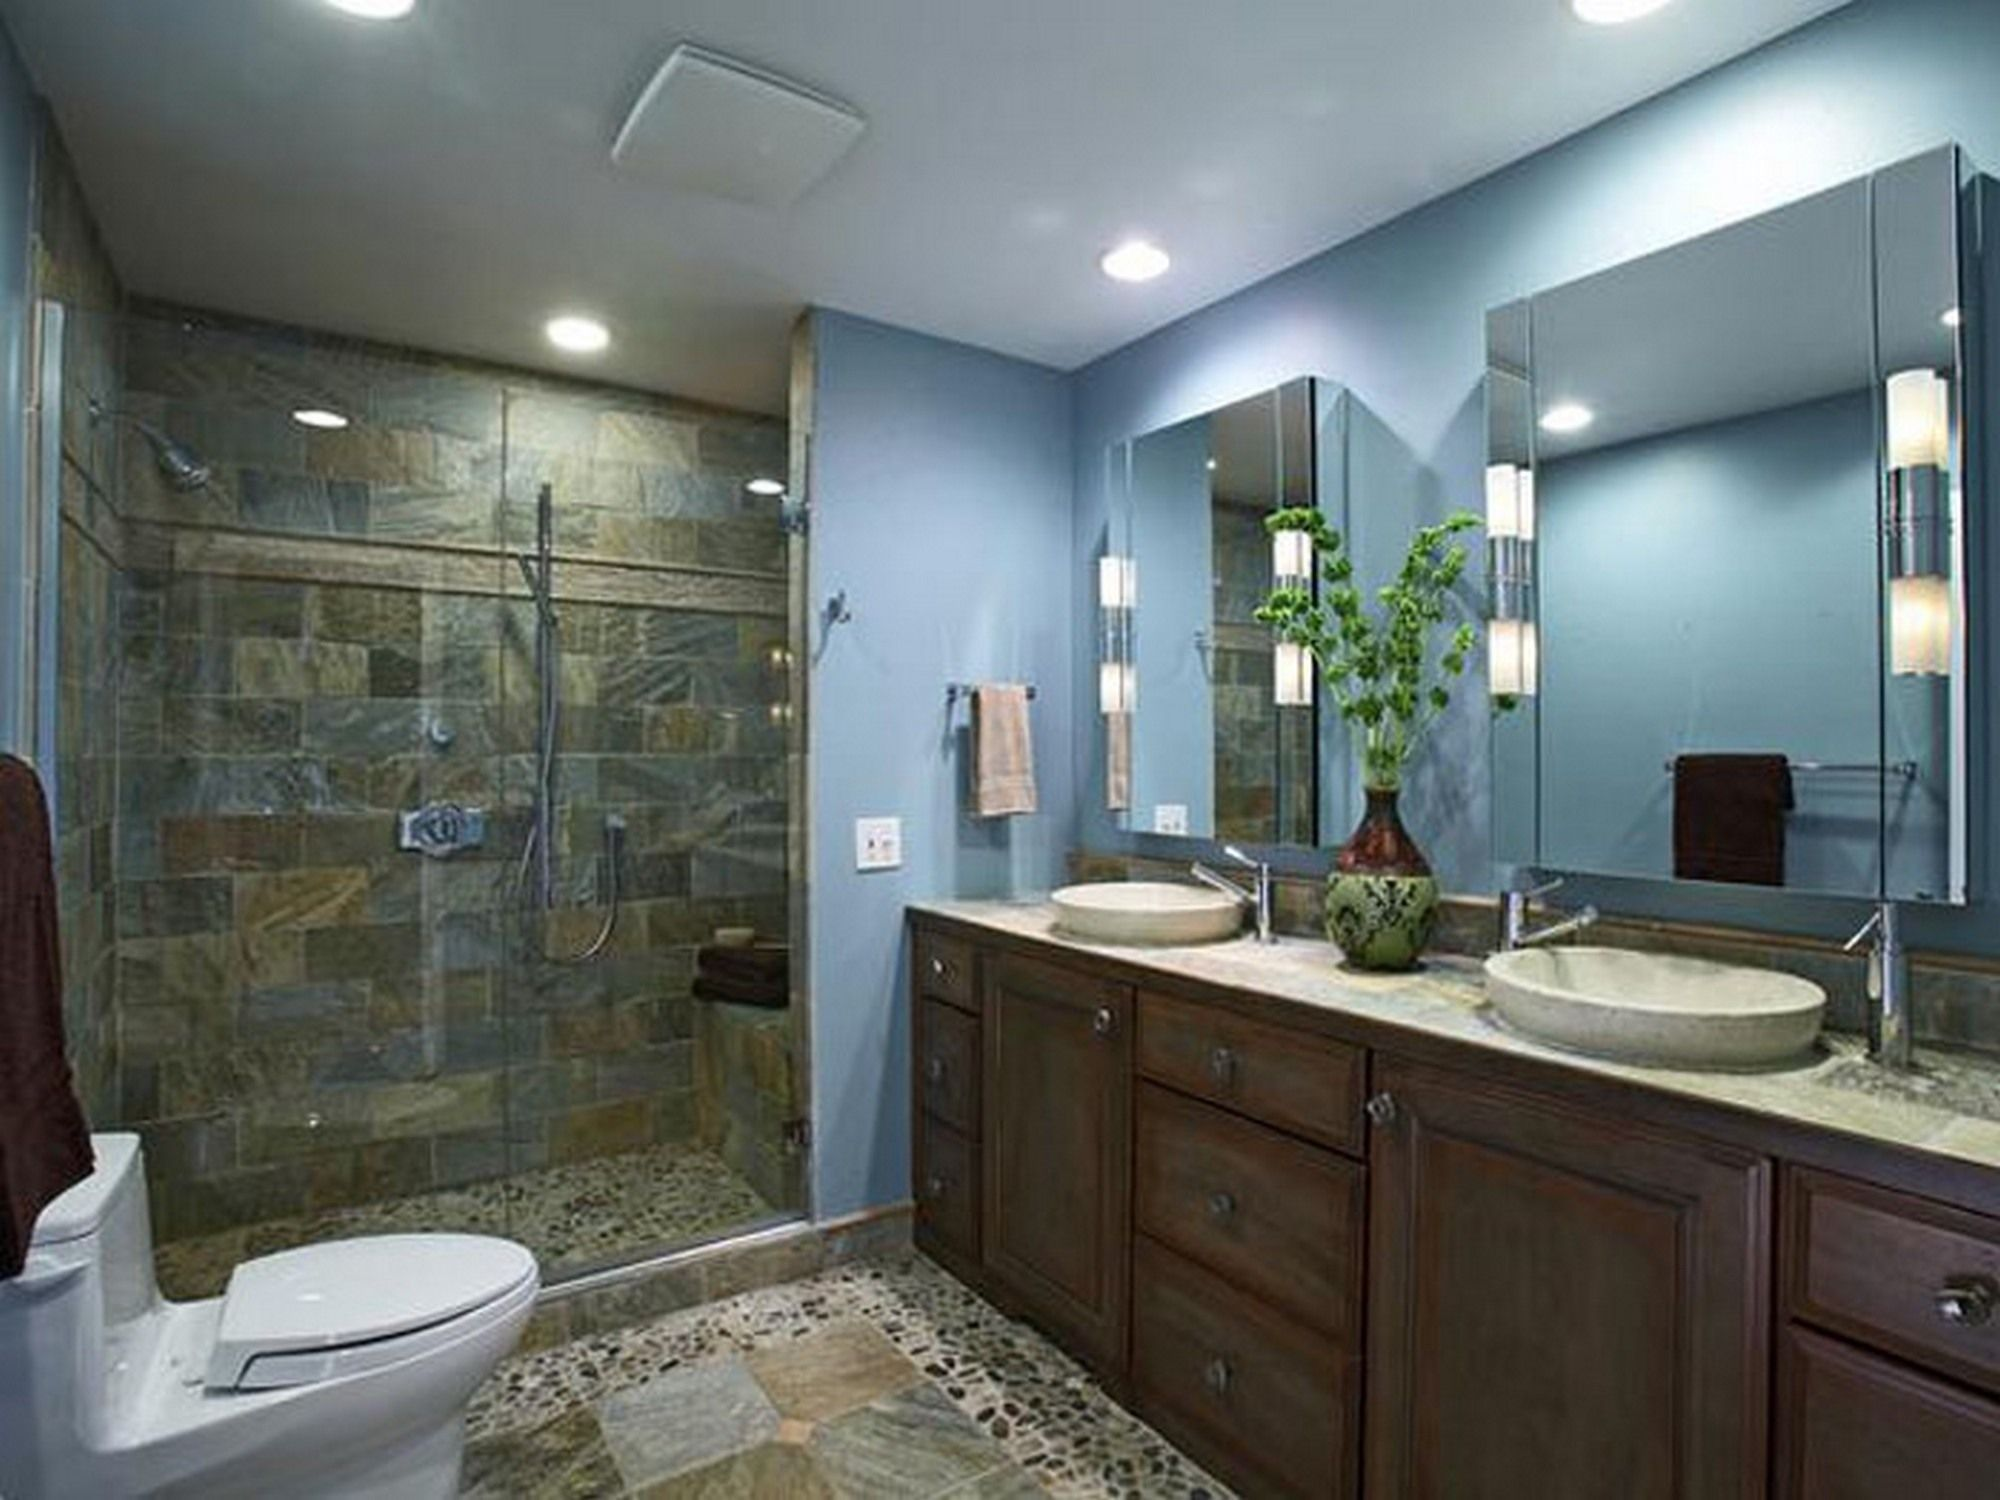 Improve Lighting In Your Home With Recessed Lighting Bathroom Recessed Lighting Recessed Lighting Bathroom Lighting